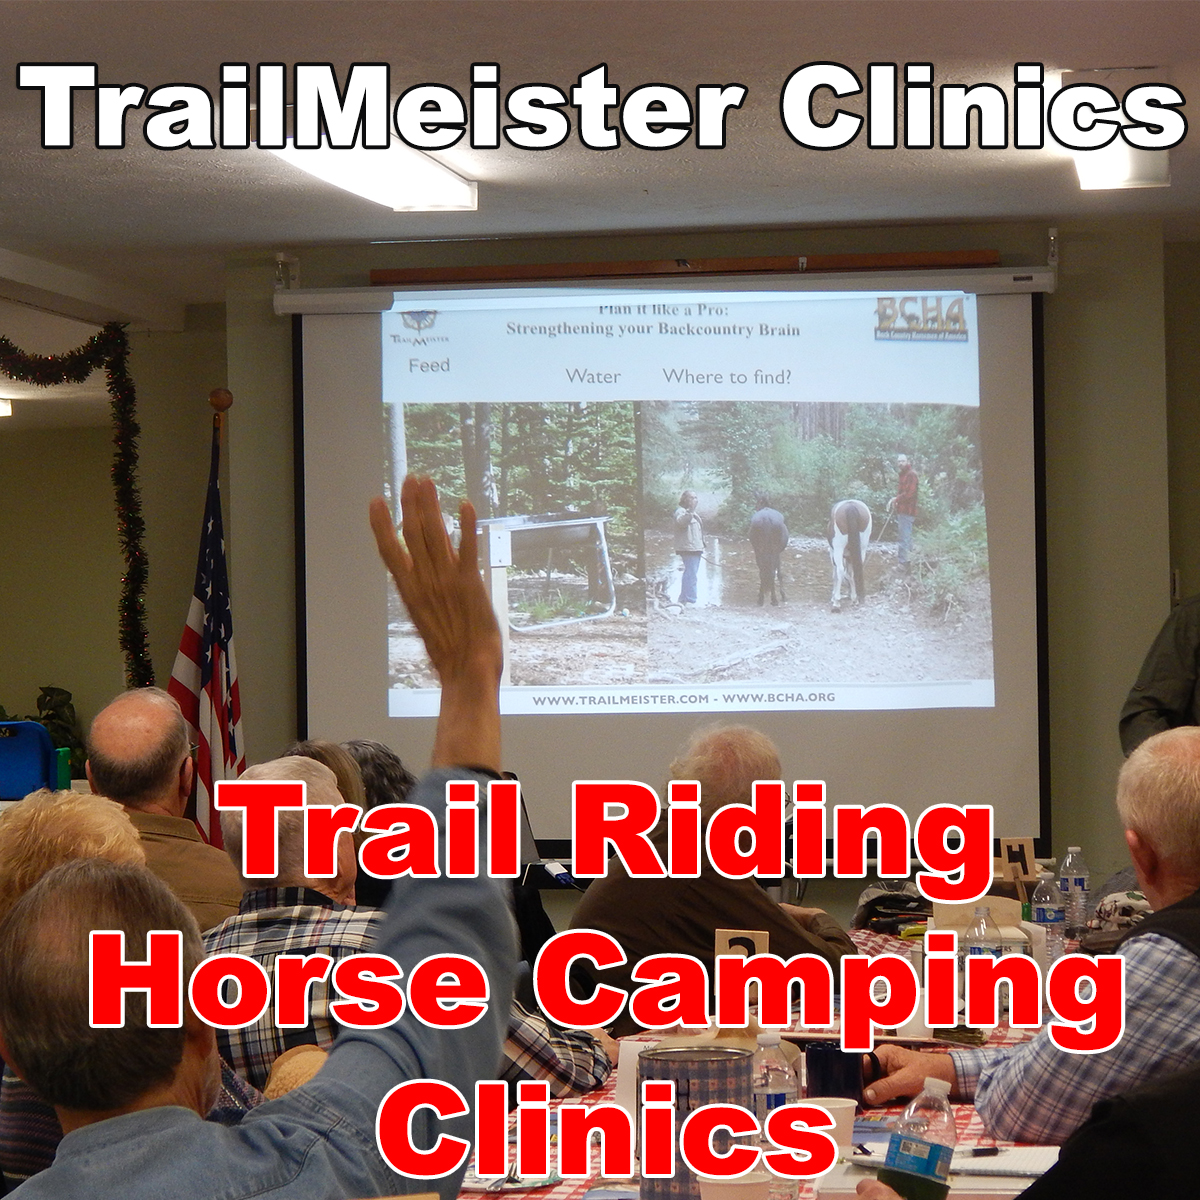 TrailMeister Clinics